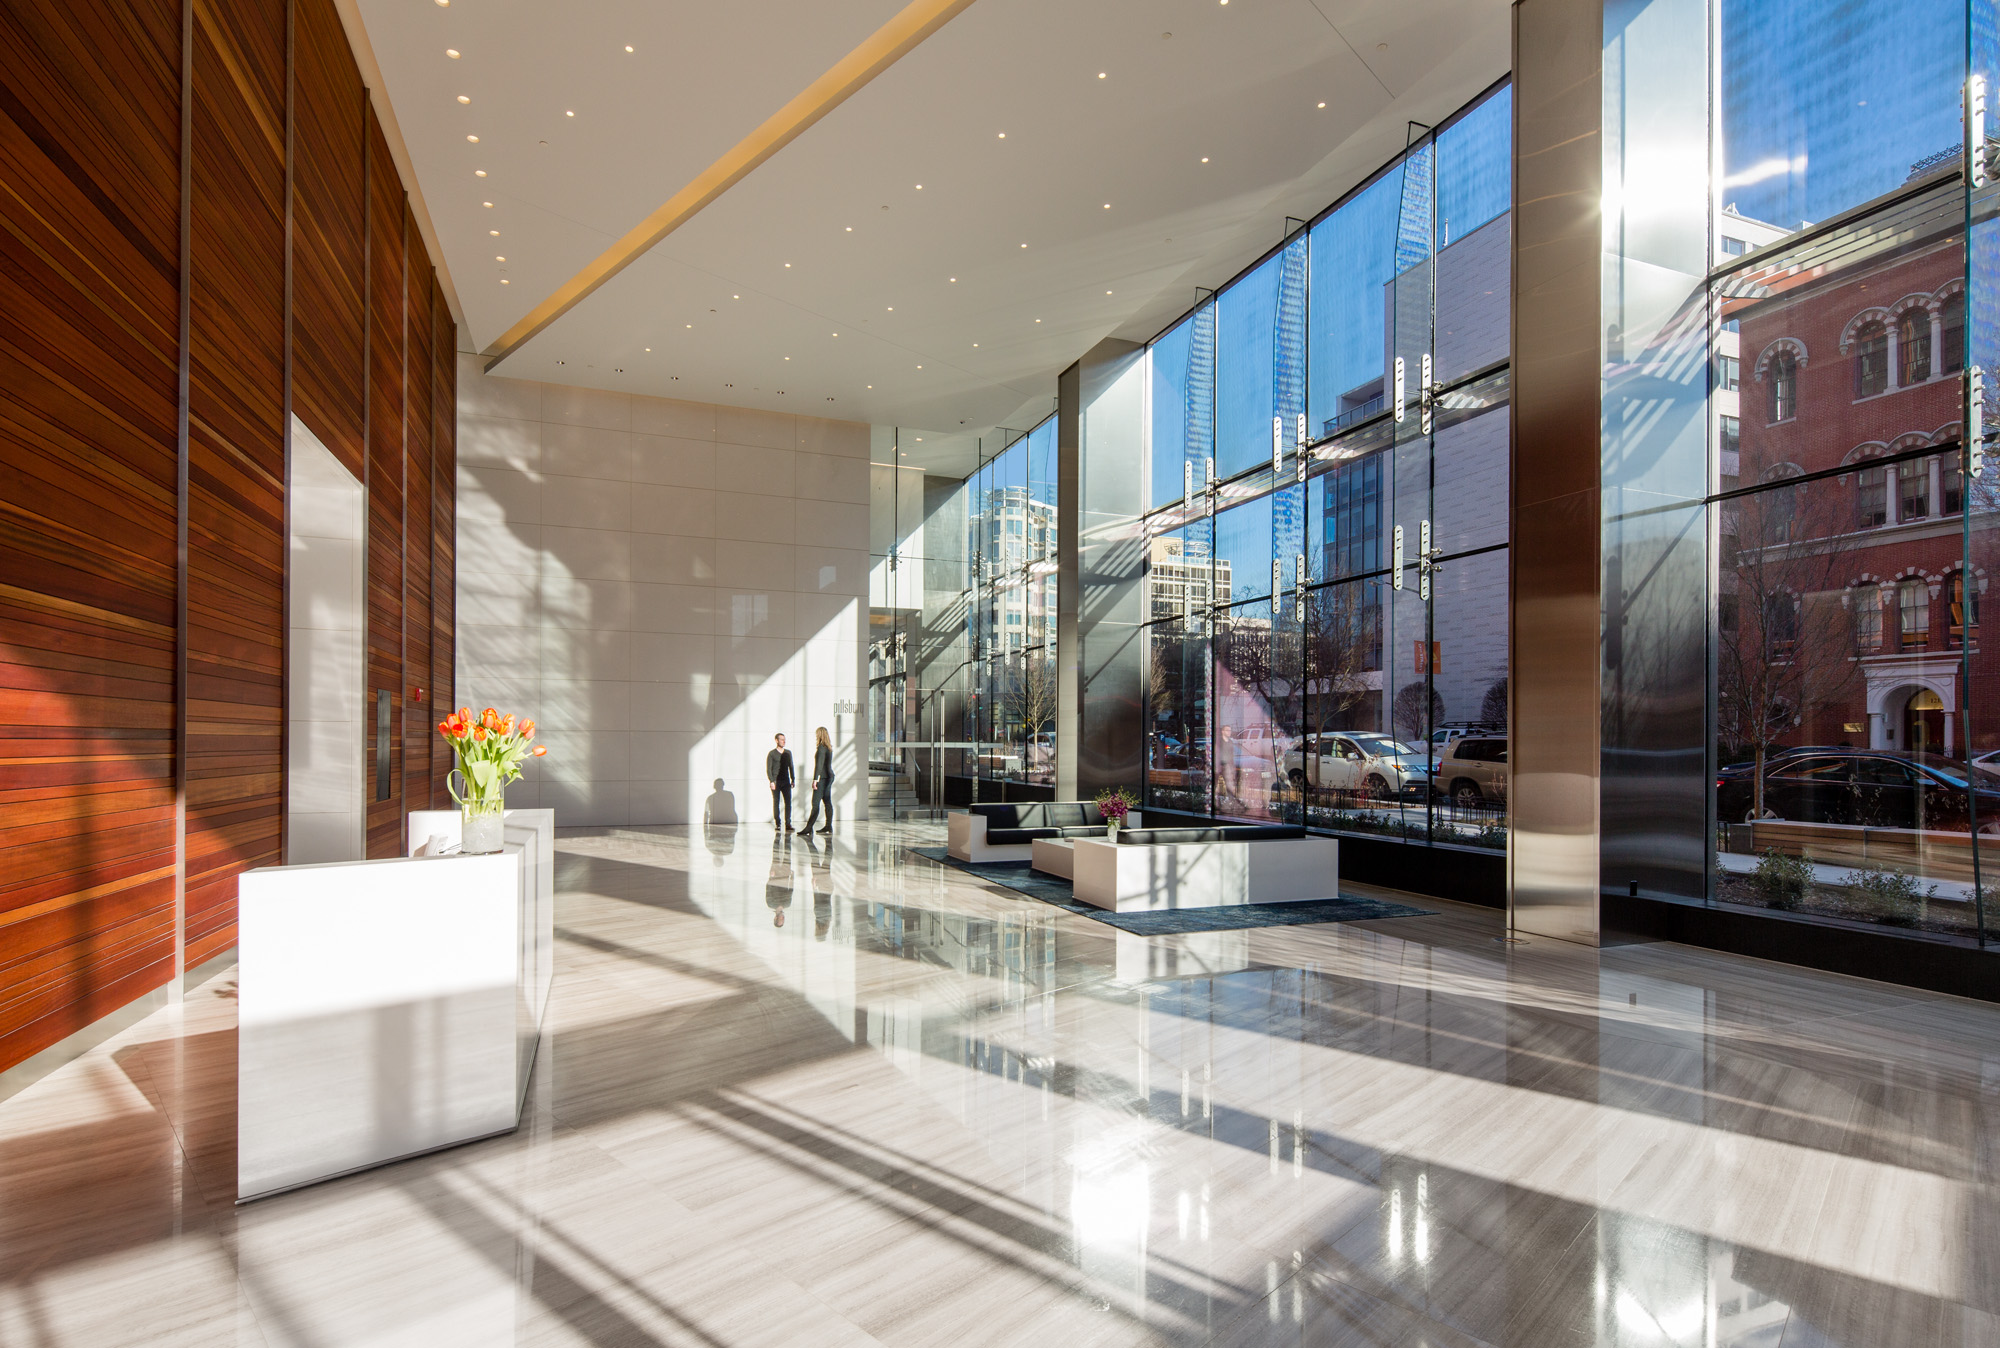 1200-17th-Lobby-Daylight-with-People